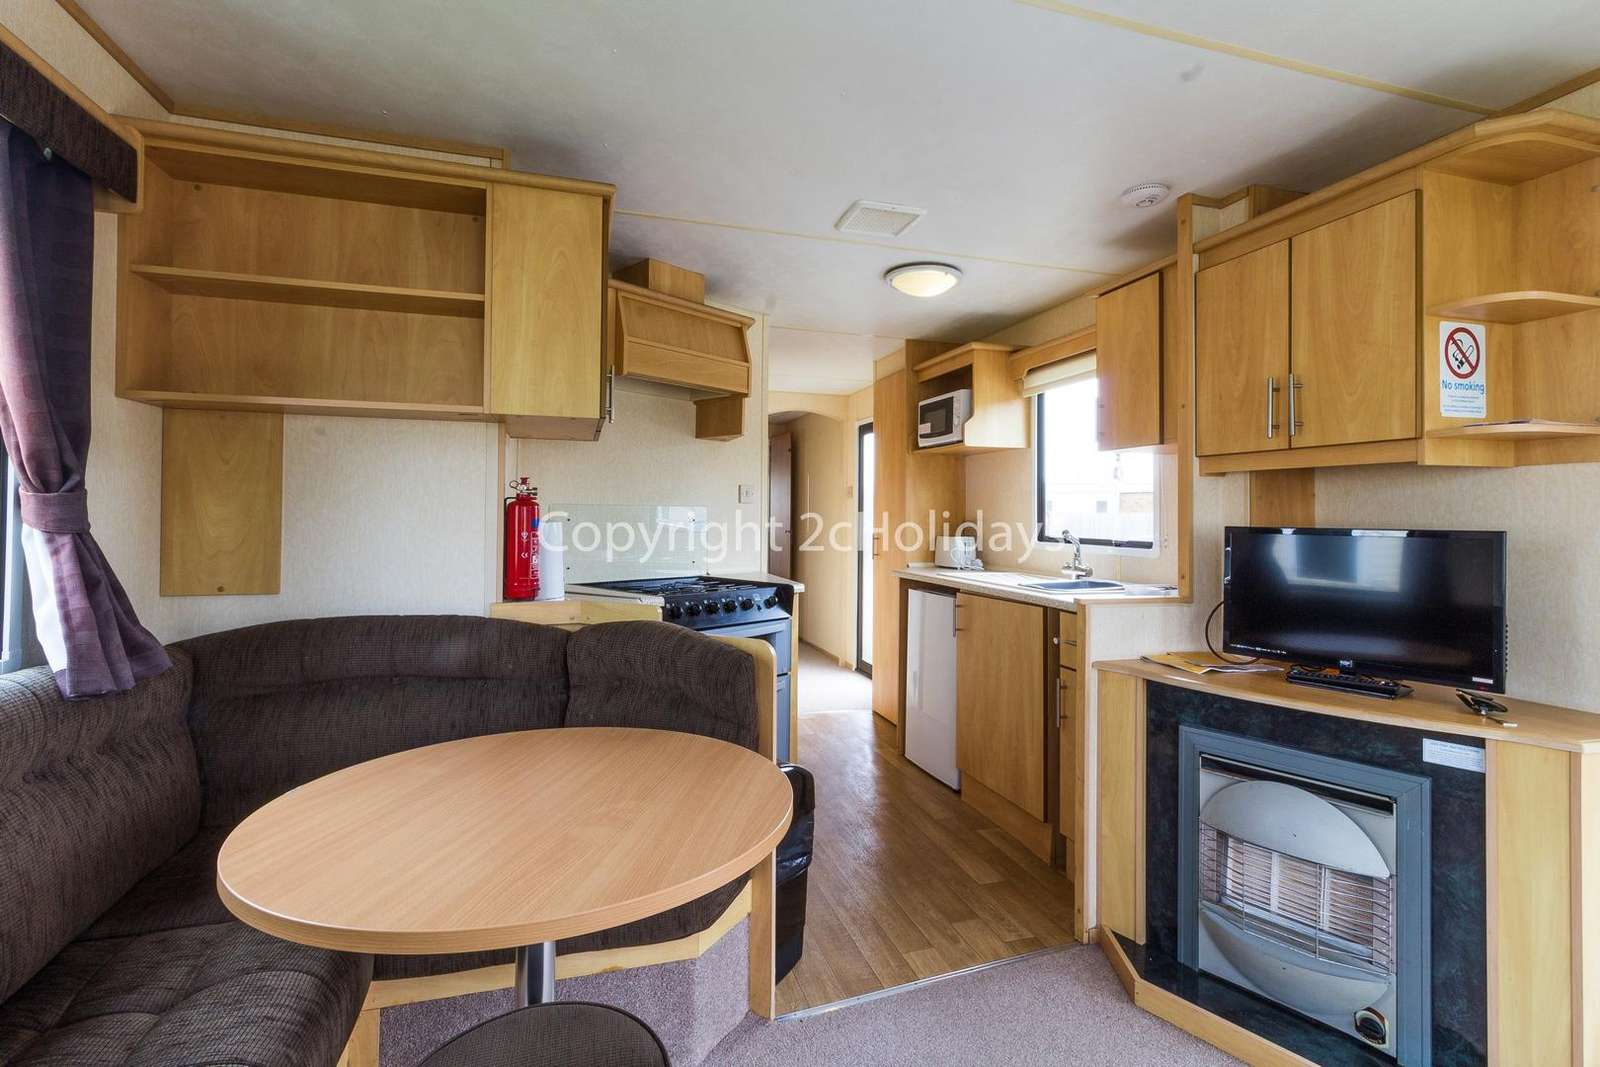 Open plan kitchen/diner, great for families!